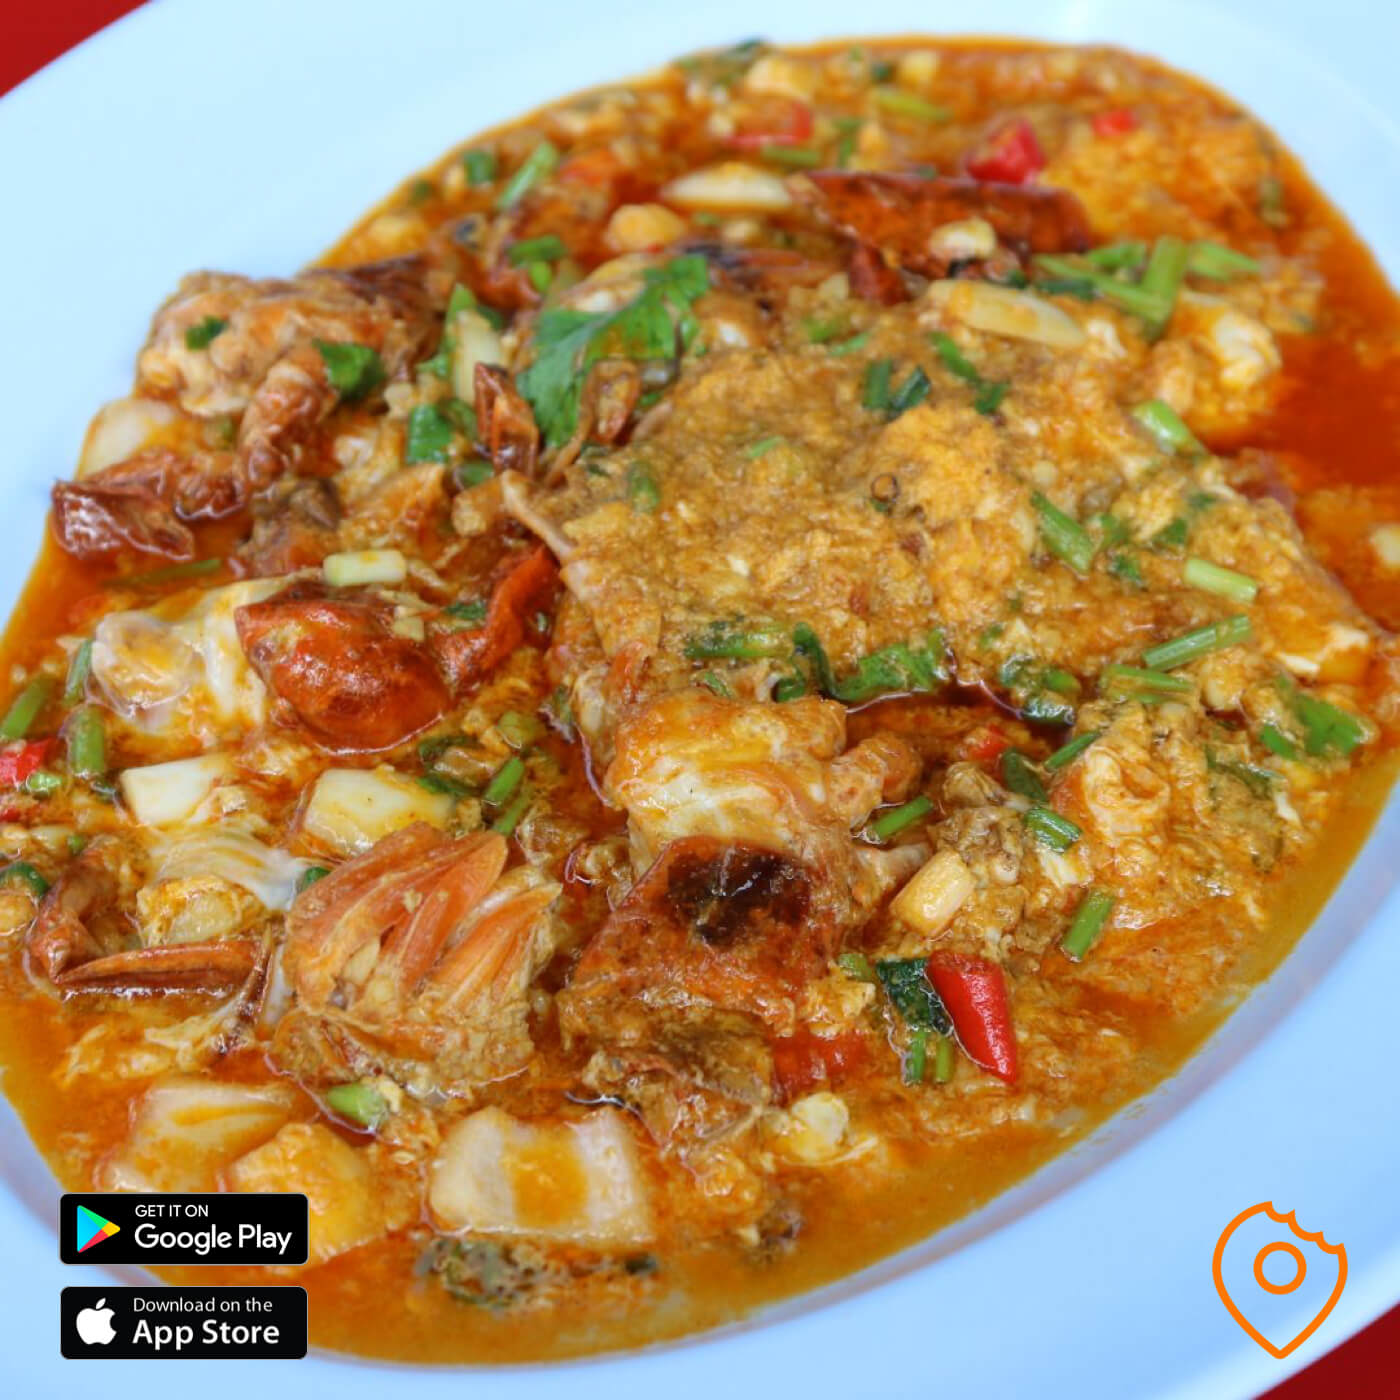 Stir-Fried Soft-Shell Crab in Curry_Powder